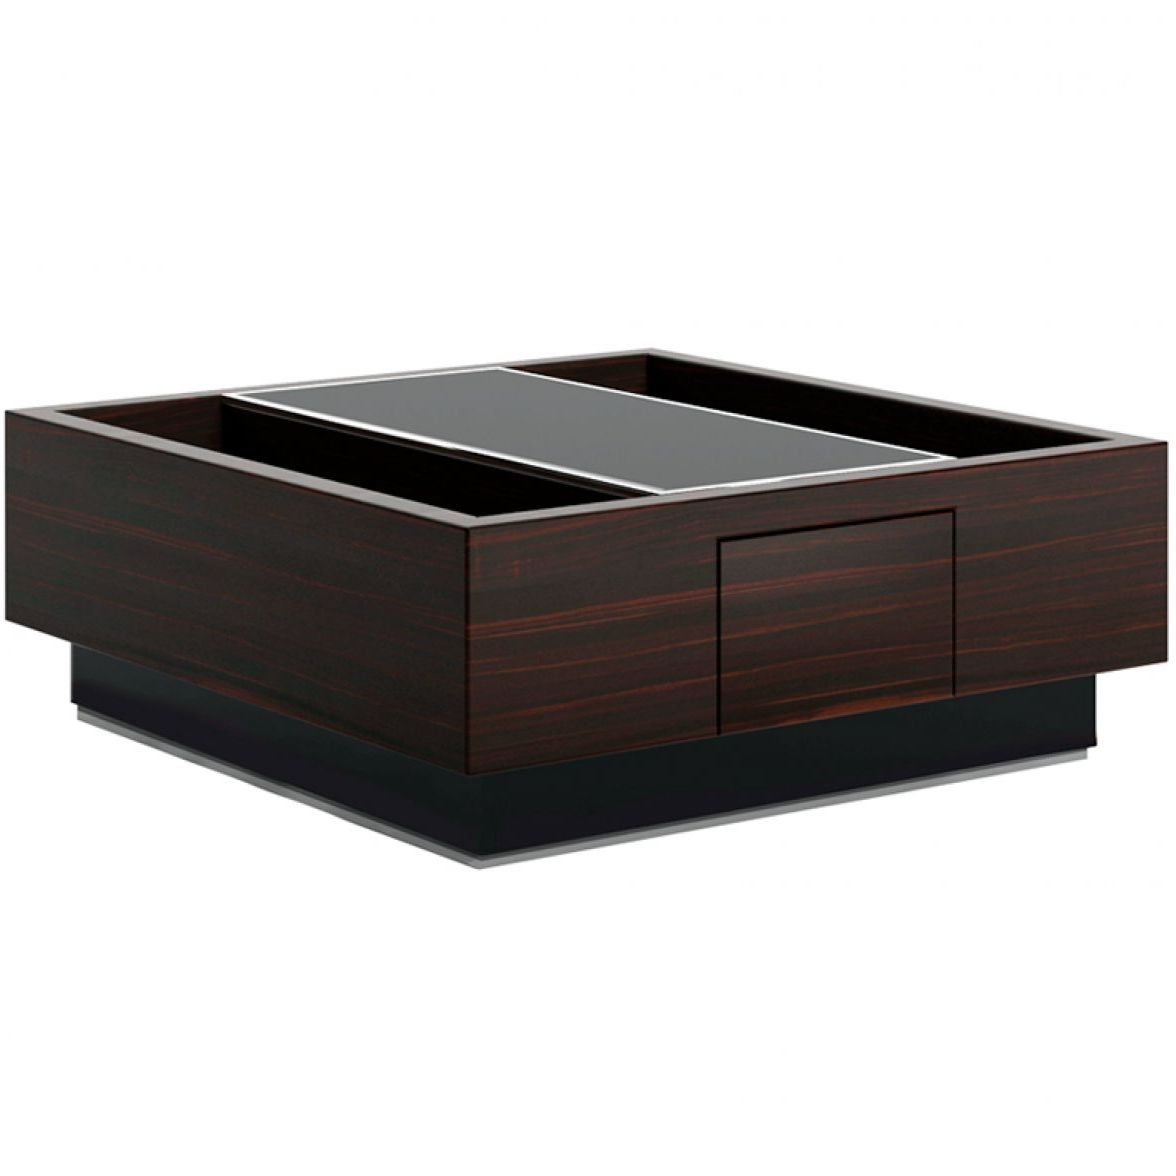 KOUNTACH L coffee table